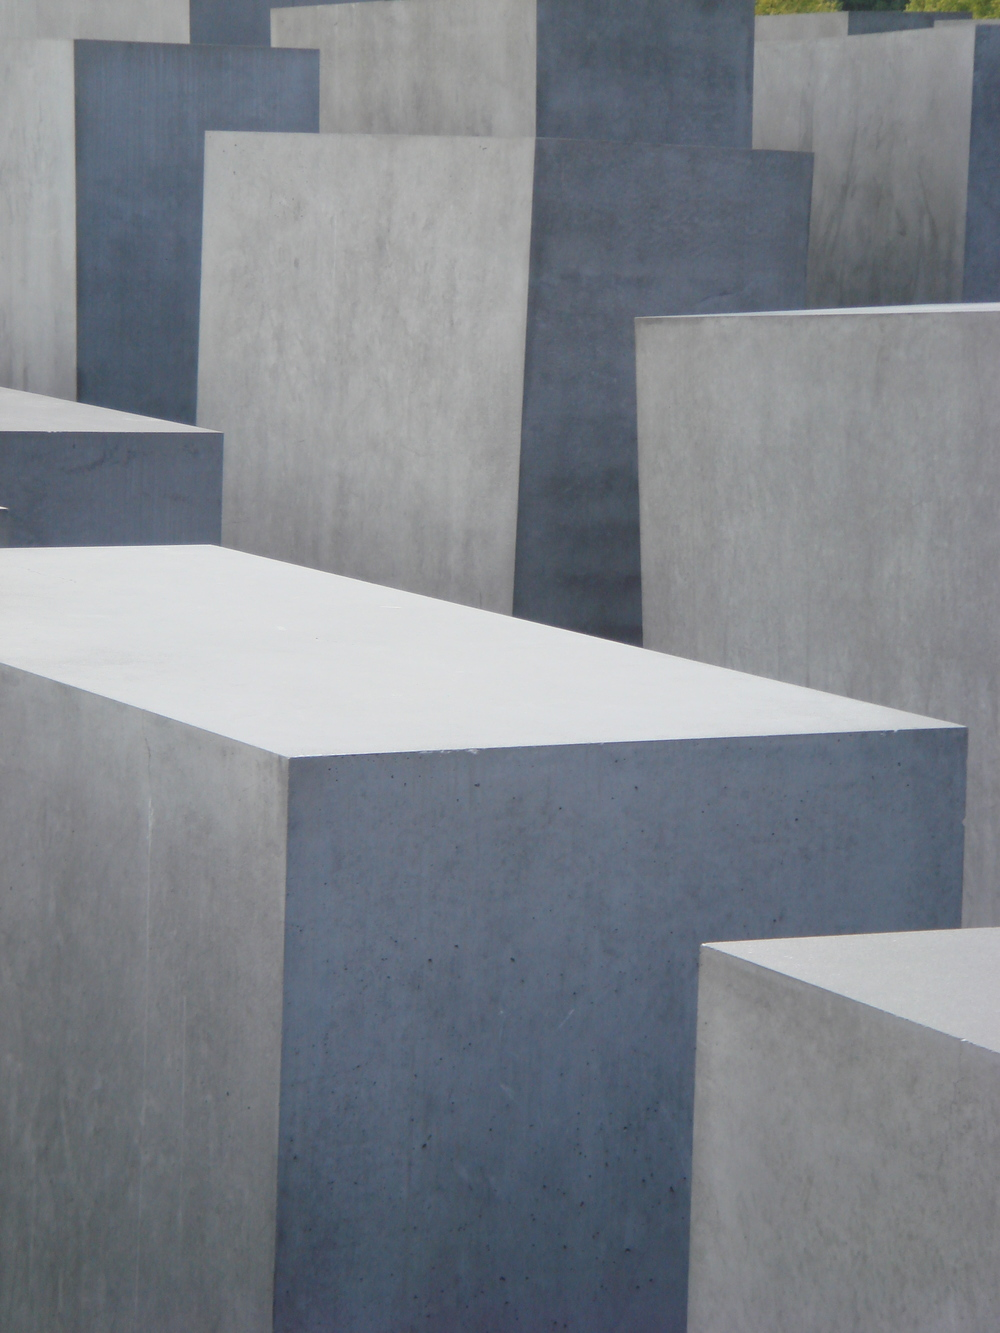 A portion of the disorienting concrete forest — the Holocaust Memorial in Berlin, Germany